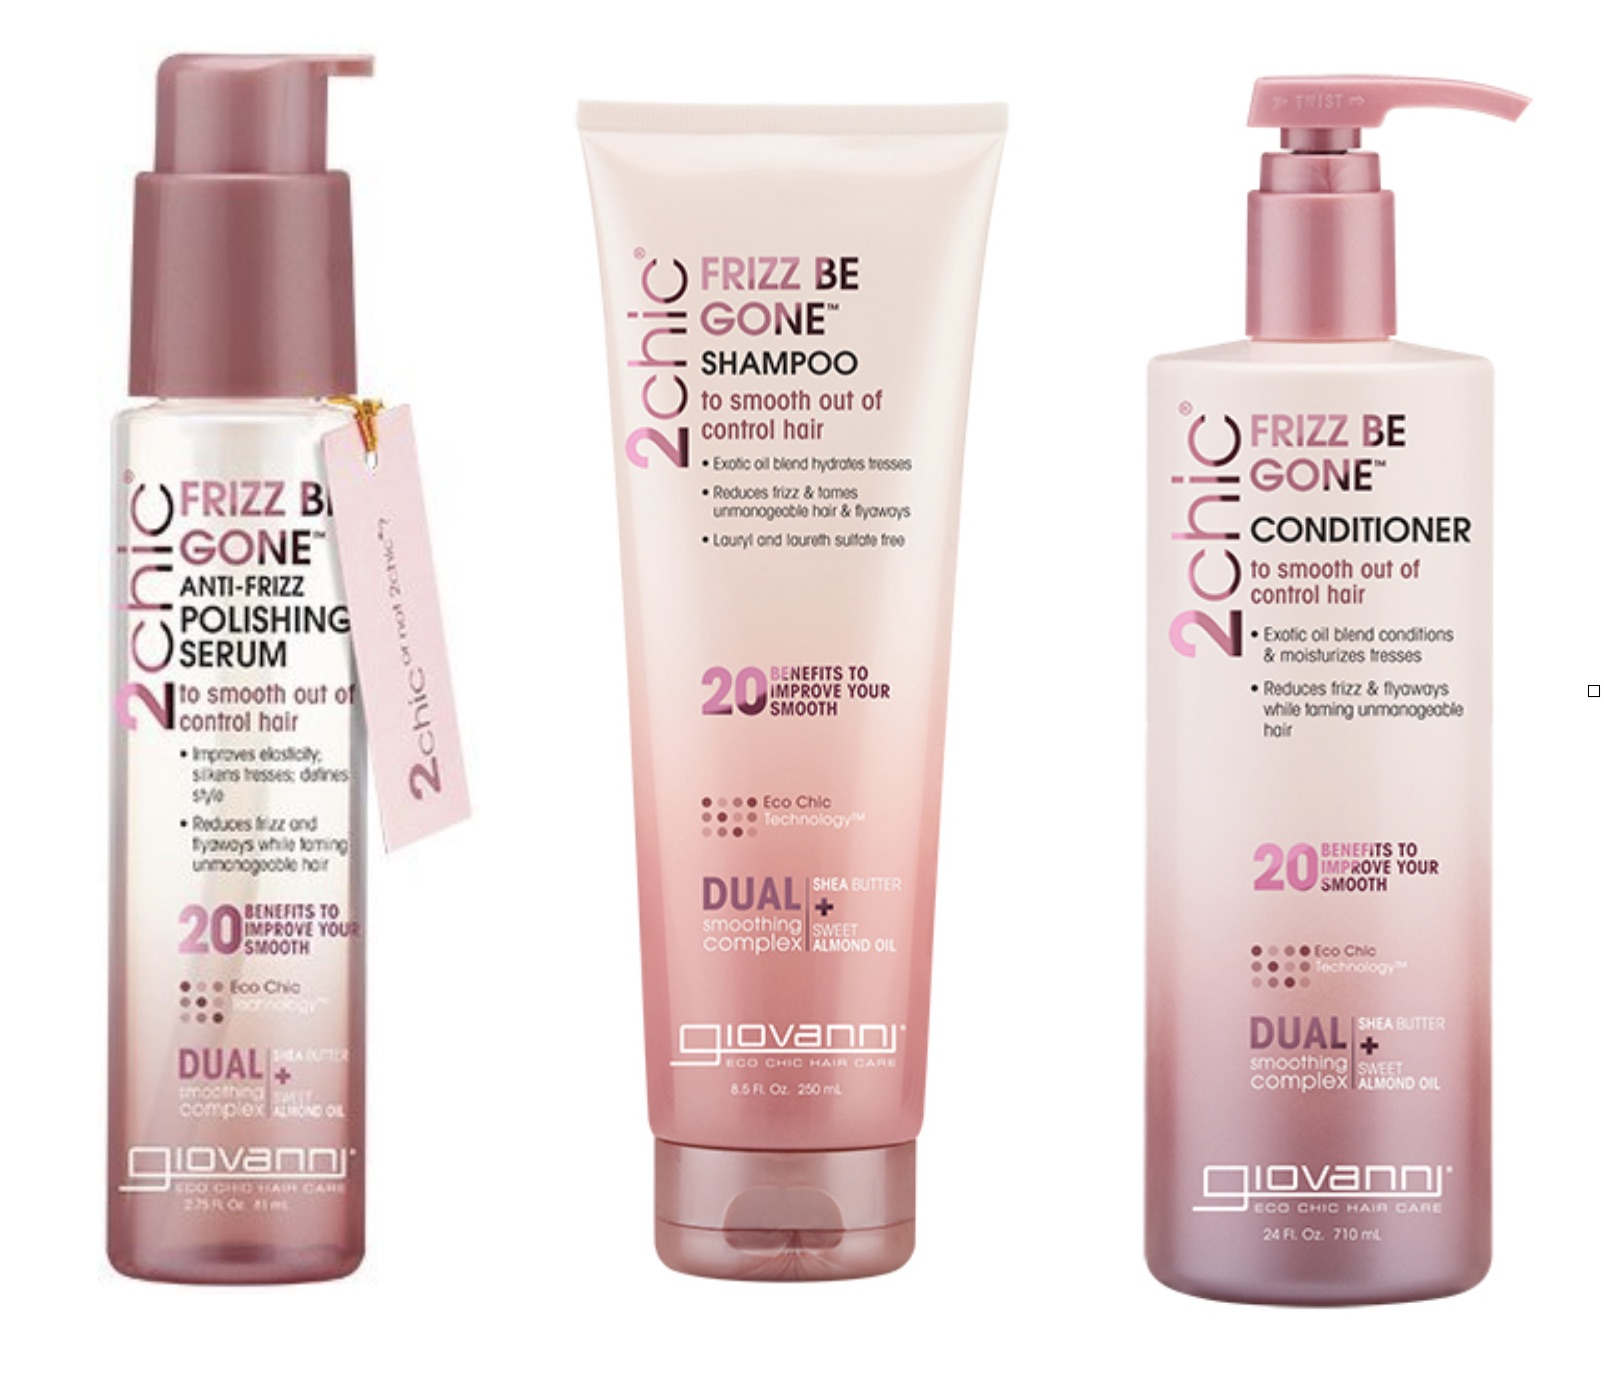 Giovanni 2 Chic Frizz Be Gone Hair Products Are Amazing